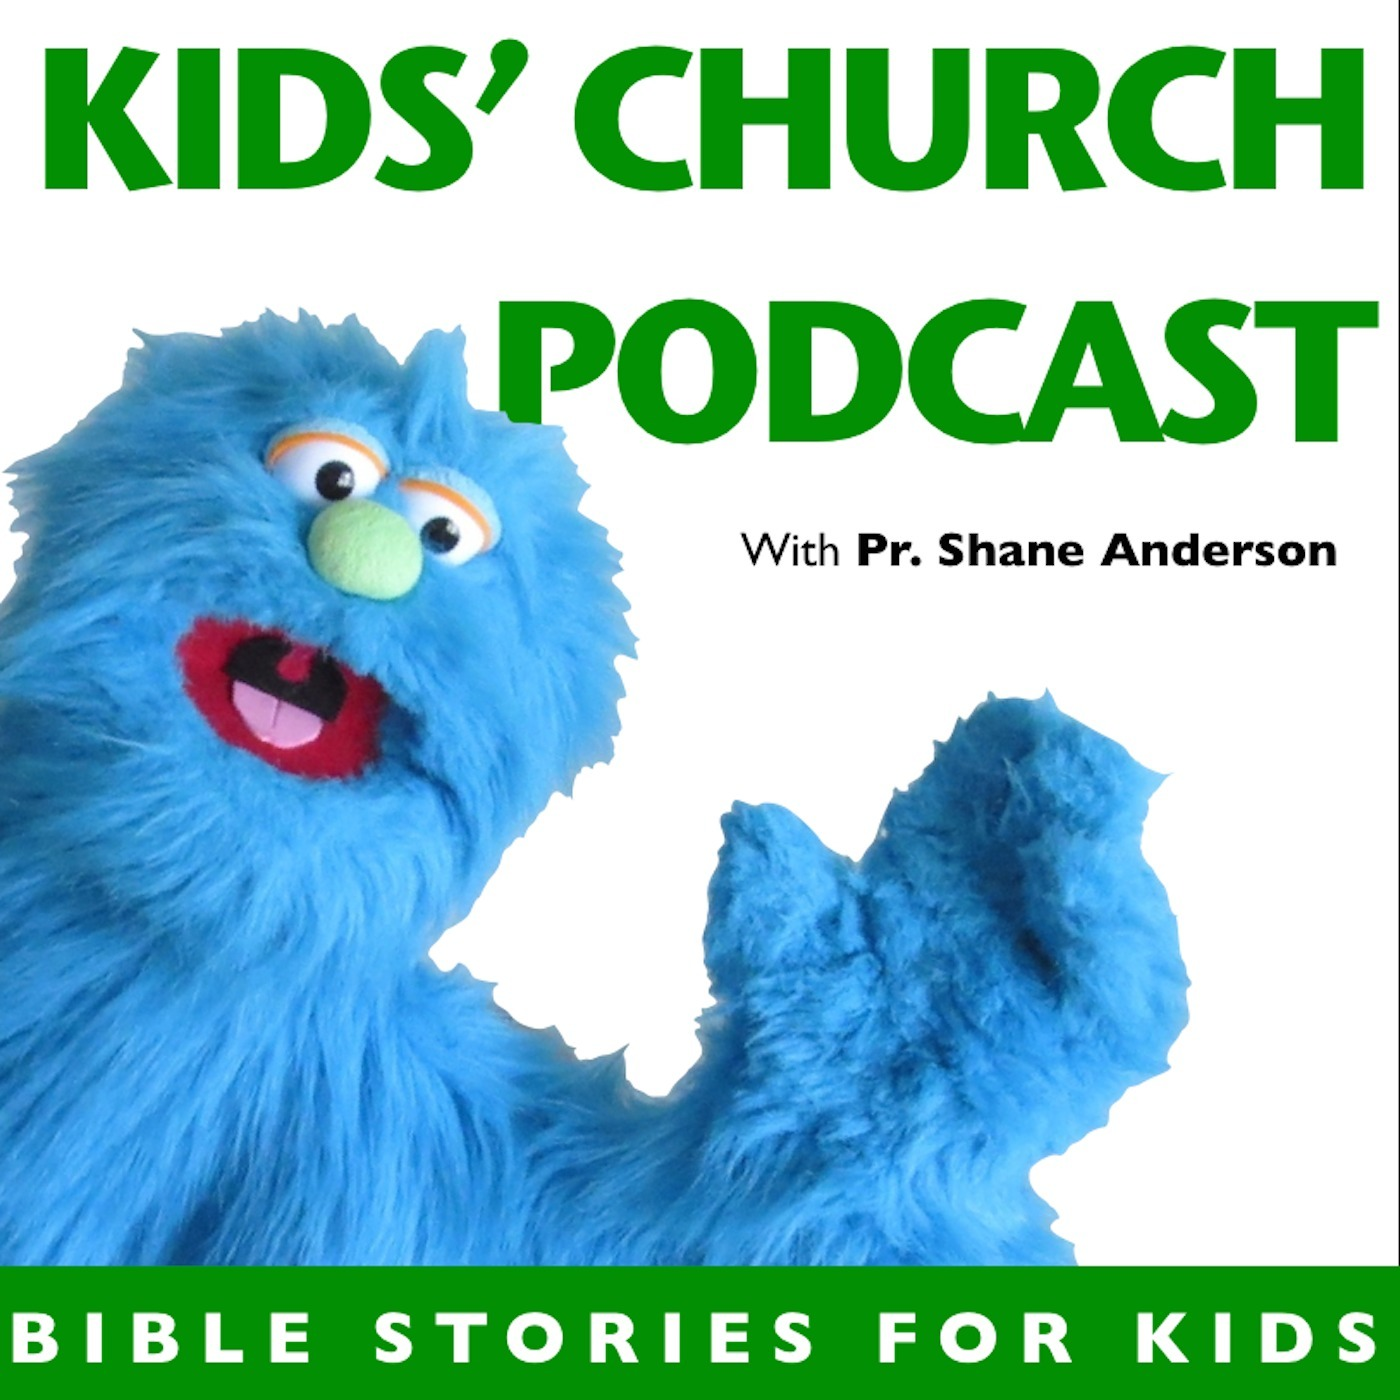 Kid's Church Podcast